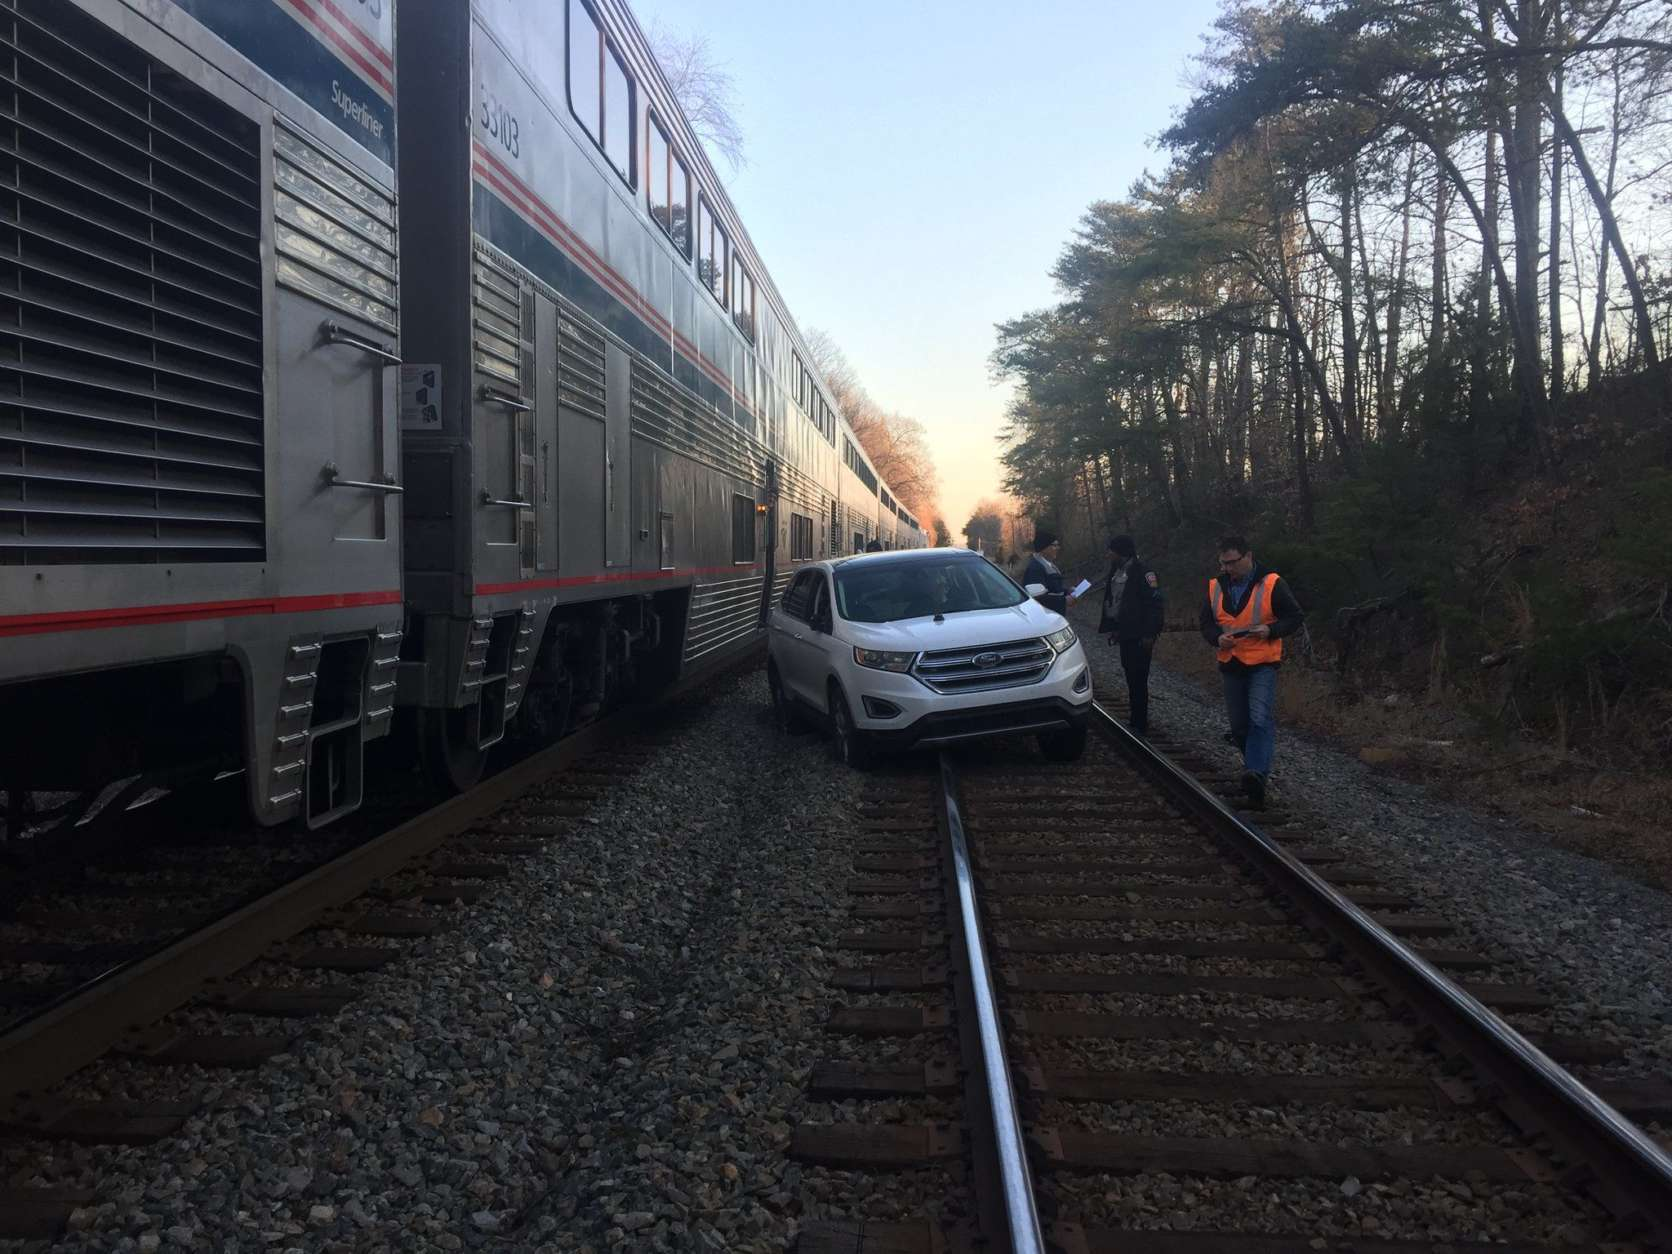 Police said a senior citizen made a wrong turn Tuesday morning and ended up on the train tracks. (Courtesy Fairfax County police)